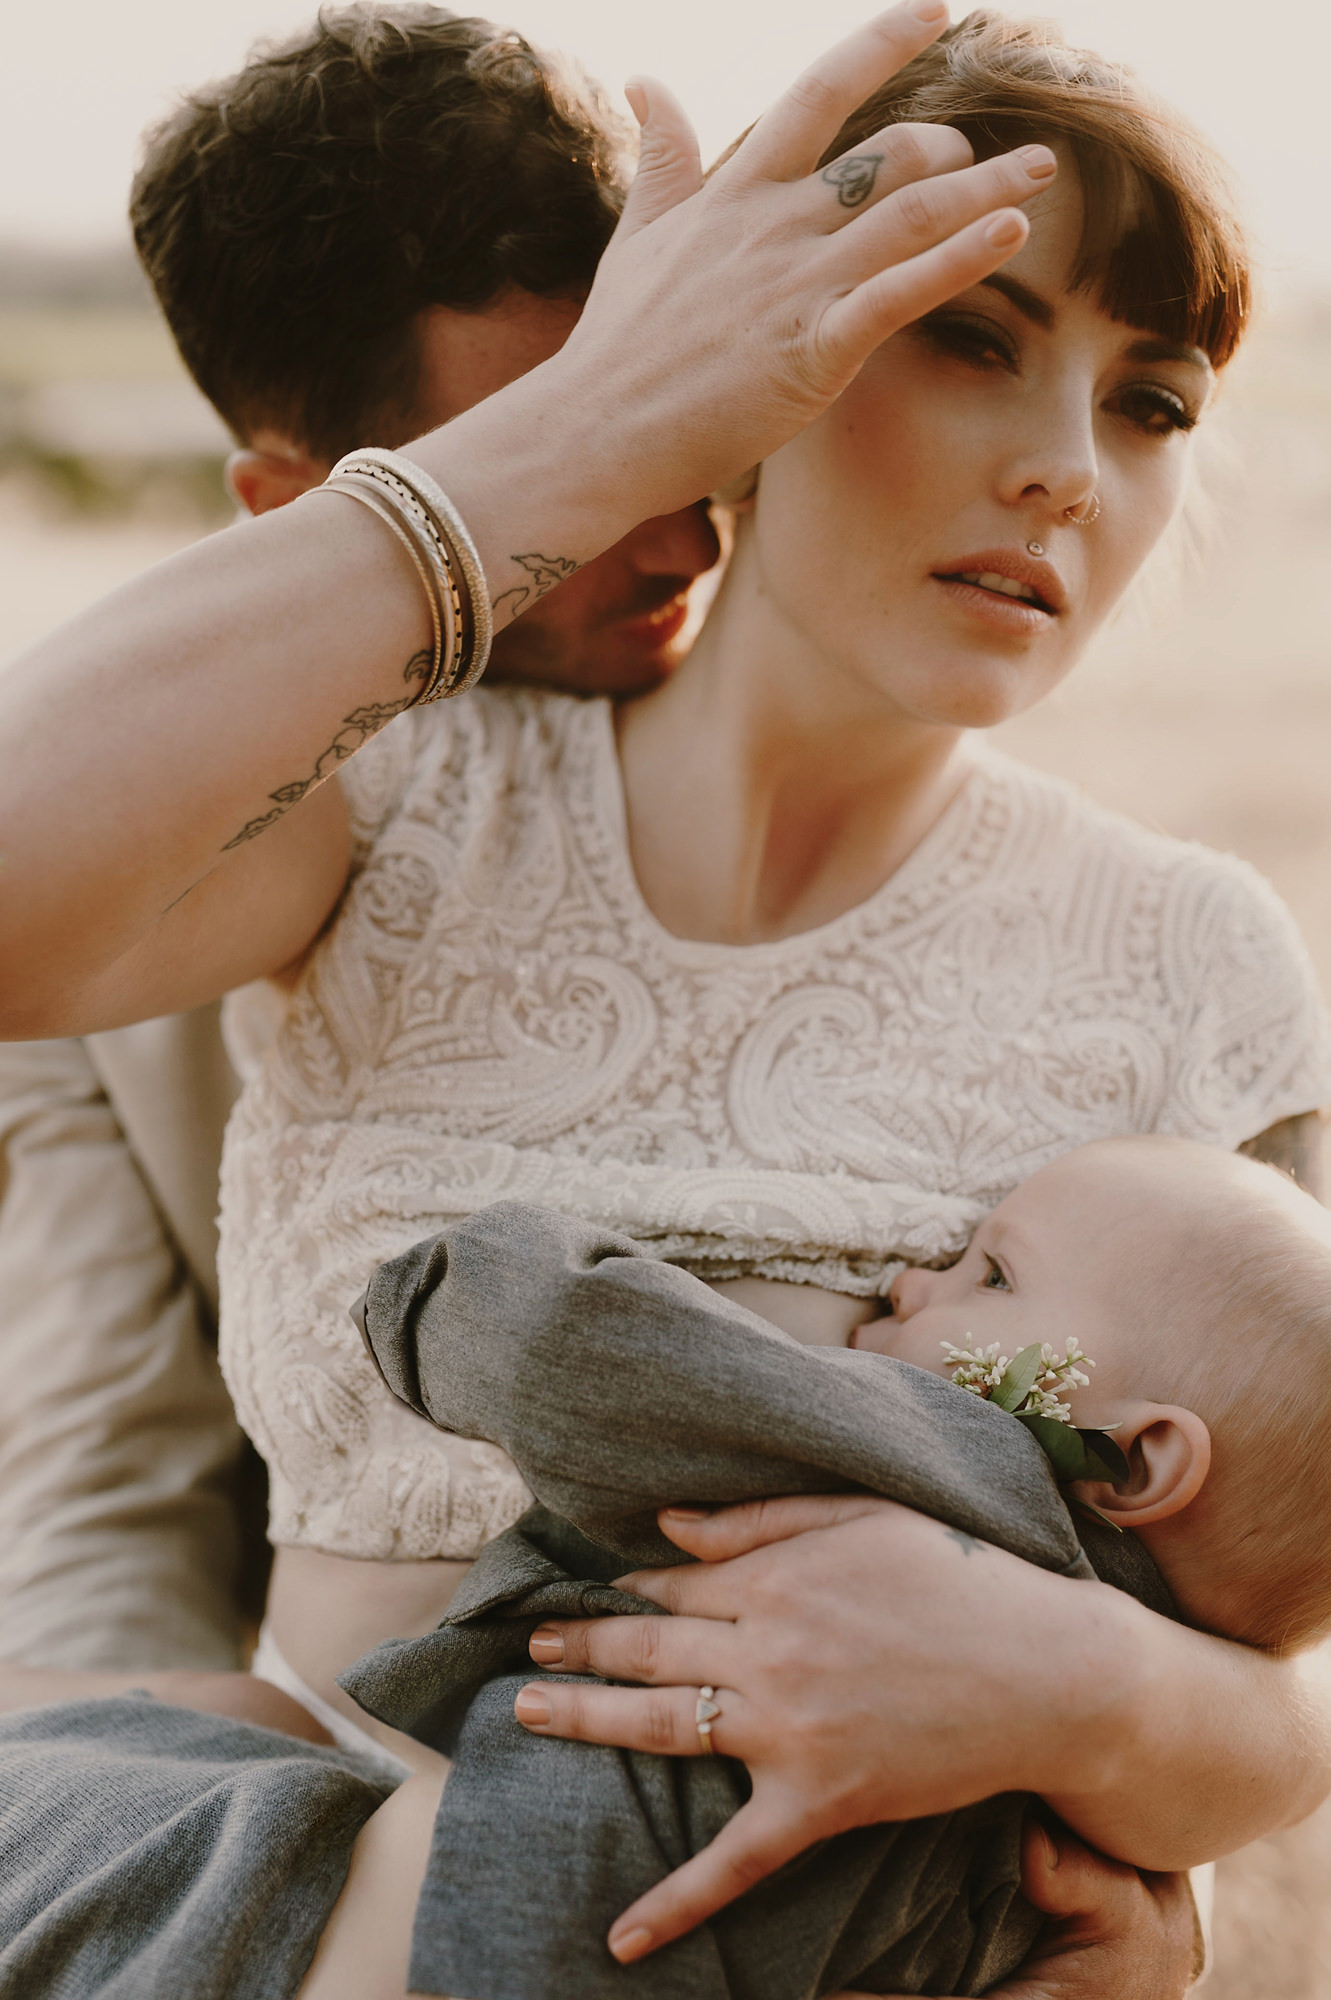 Bride breastfeeds baby while groom kisses her neck - photo by Kristen Marie Parker